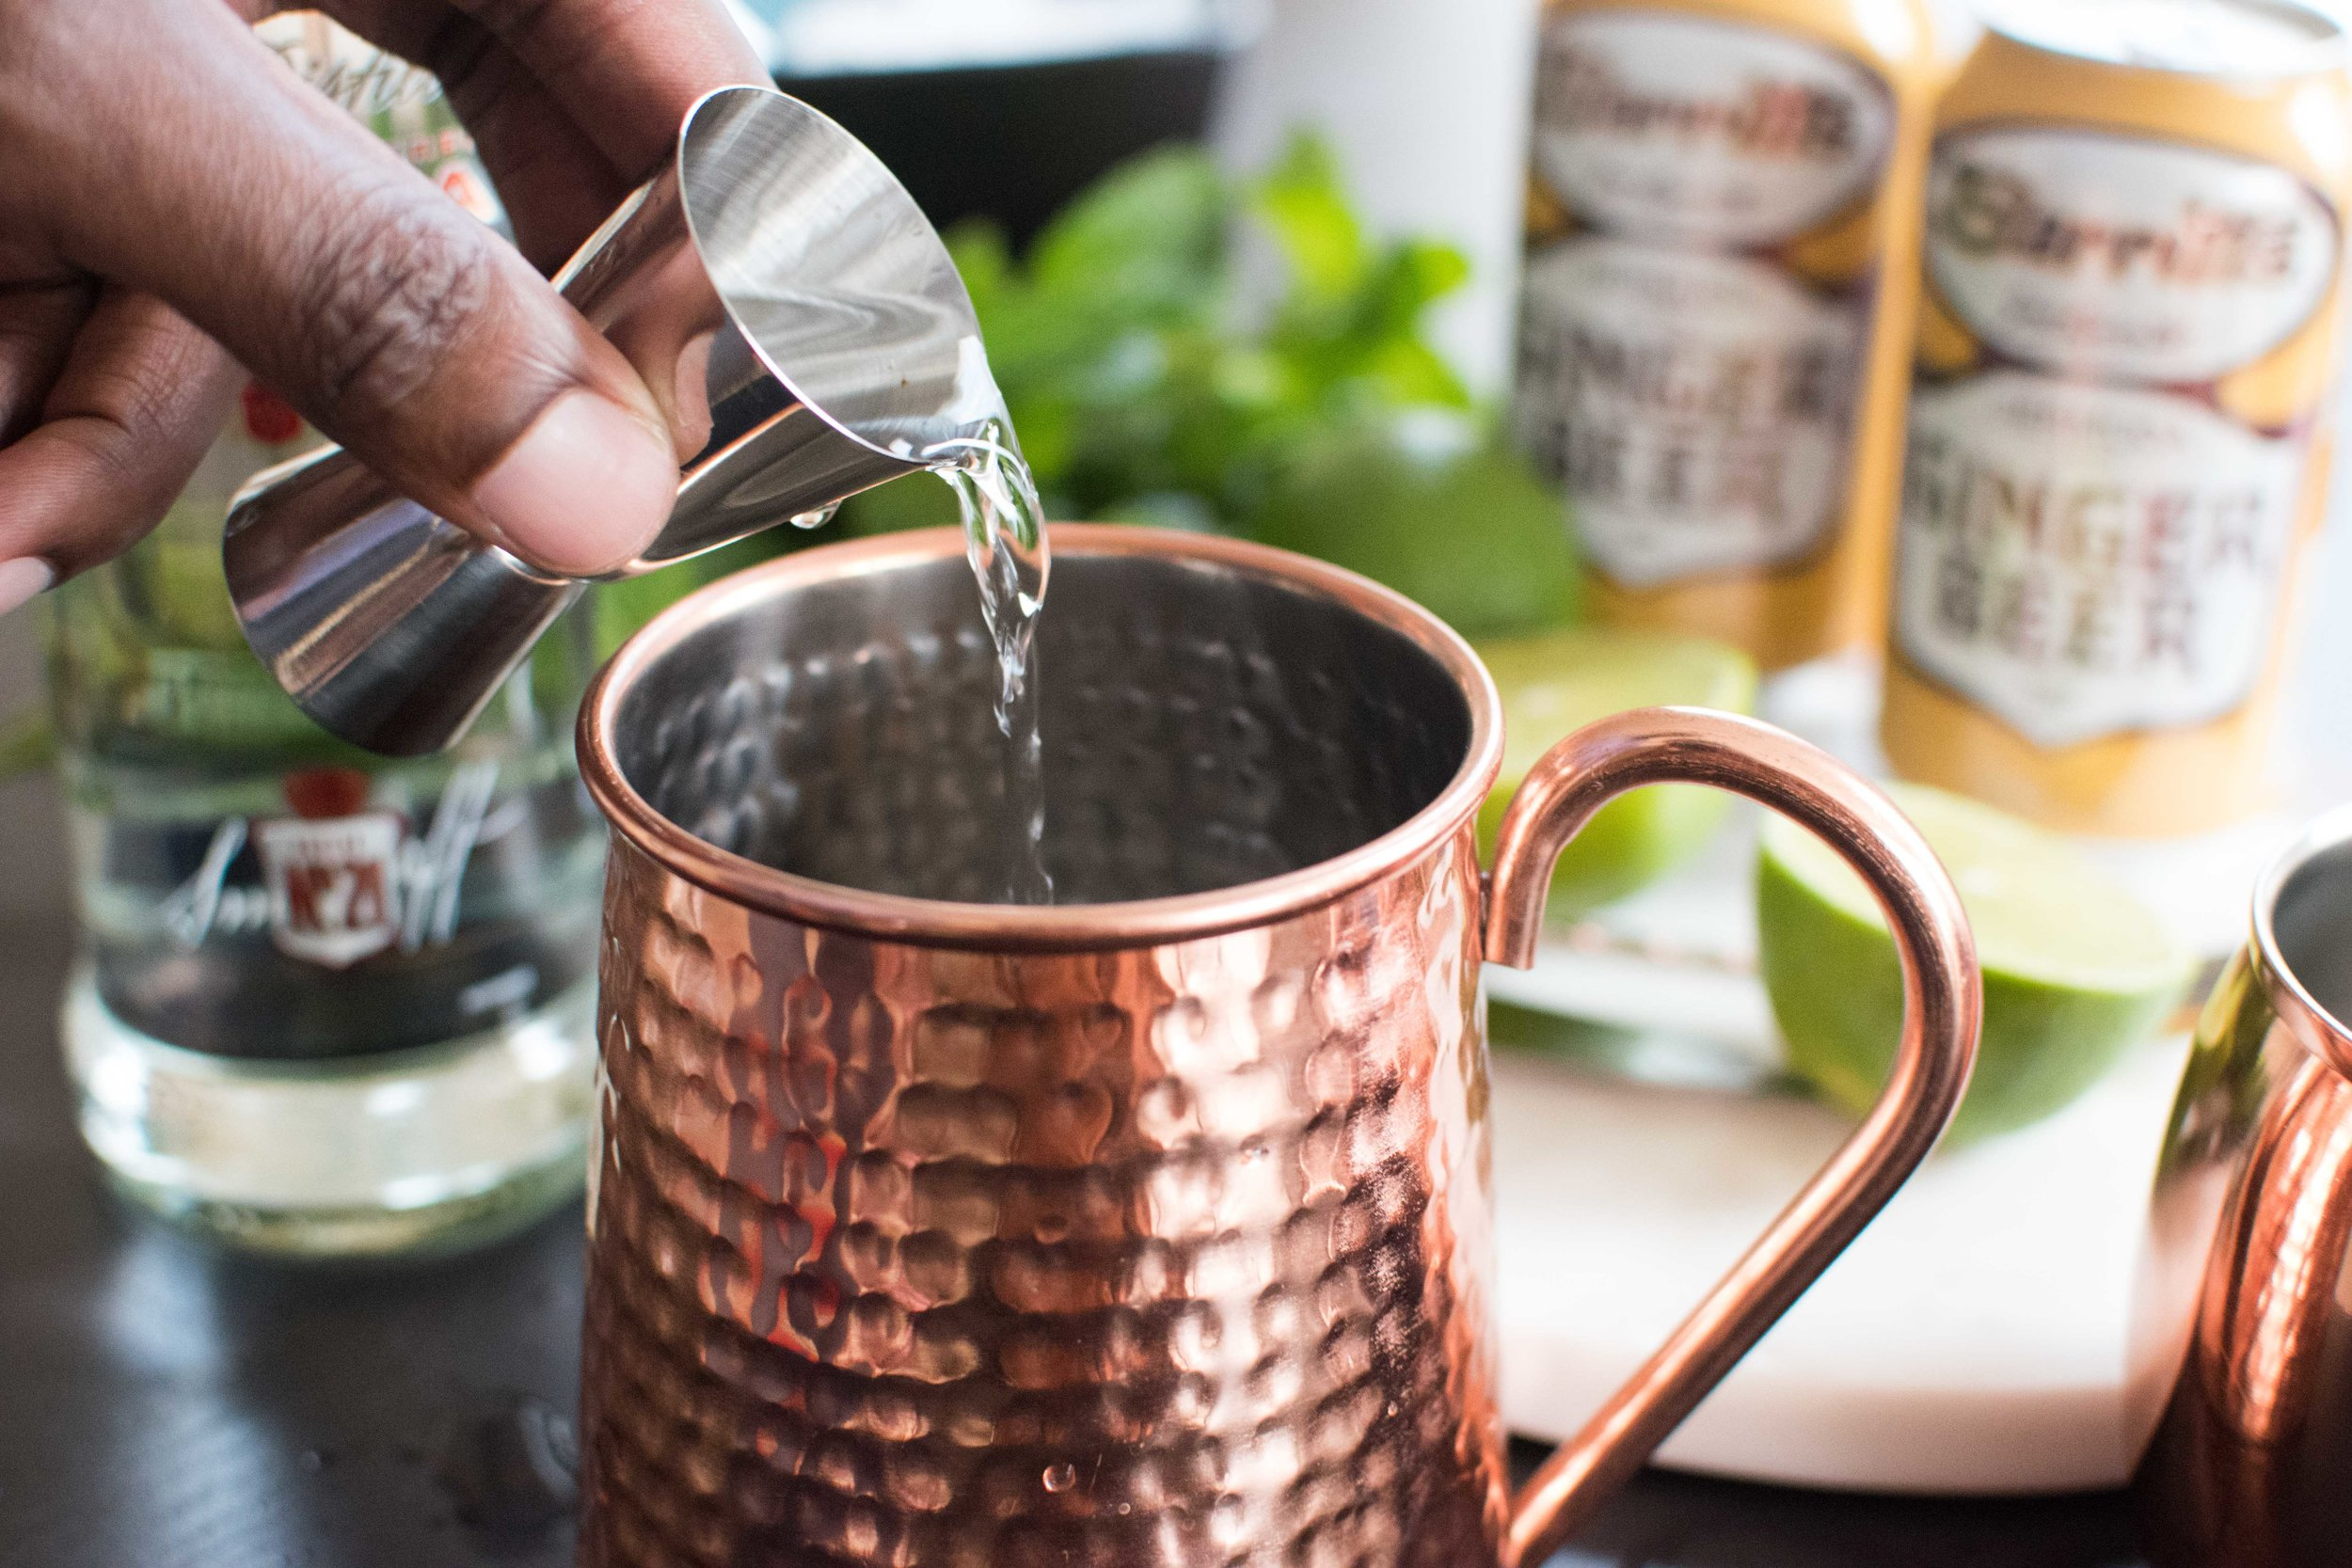 Moscow Mule Recipe Barritts Ginger Beer-17.jpg